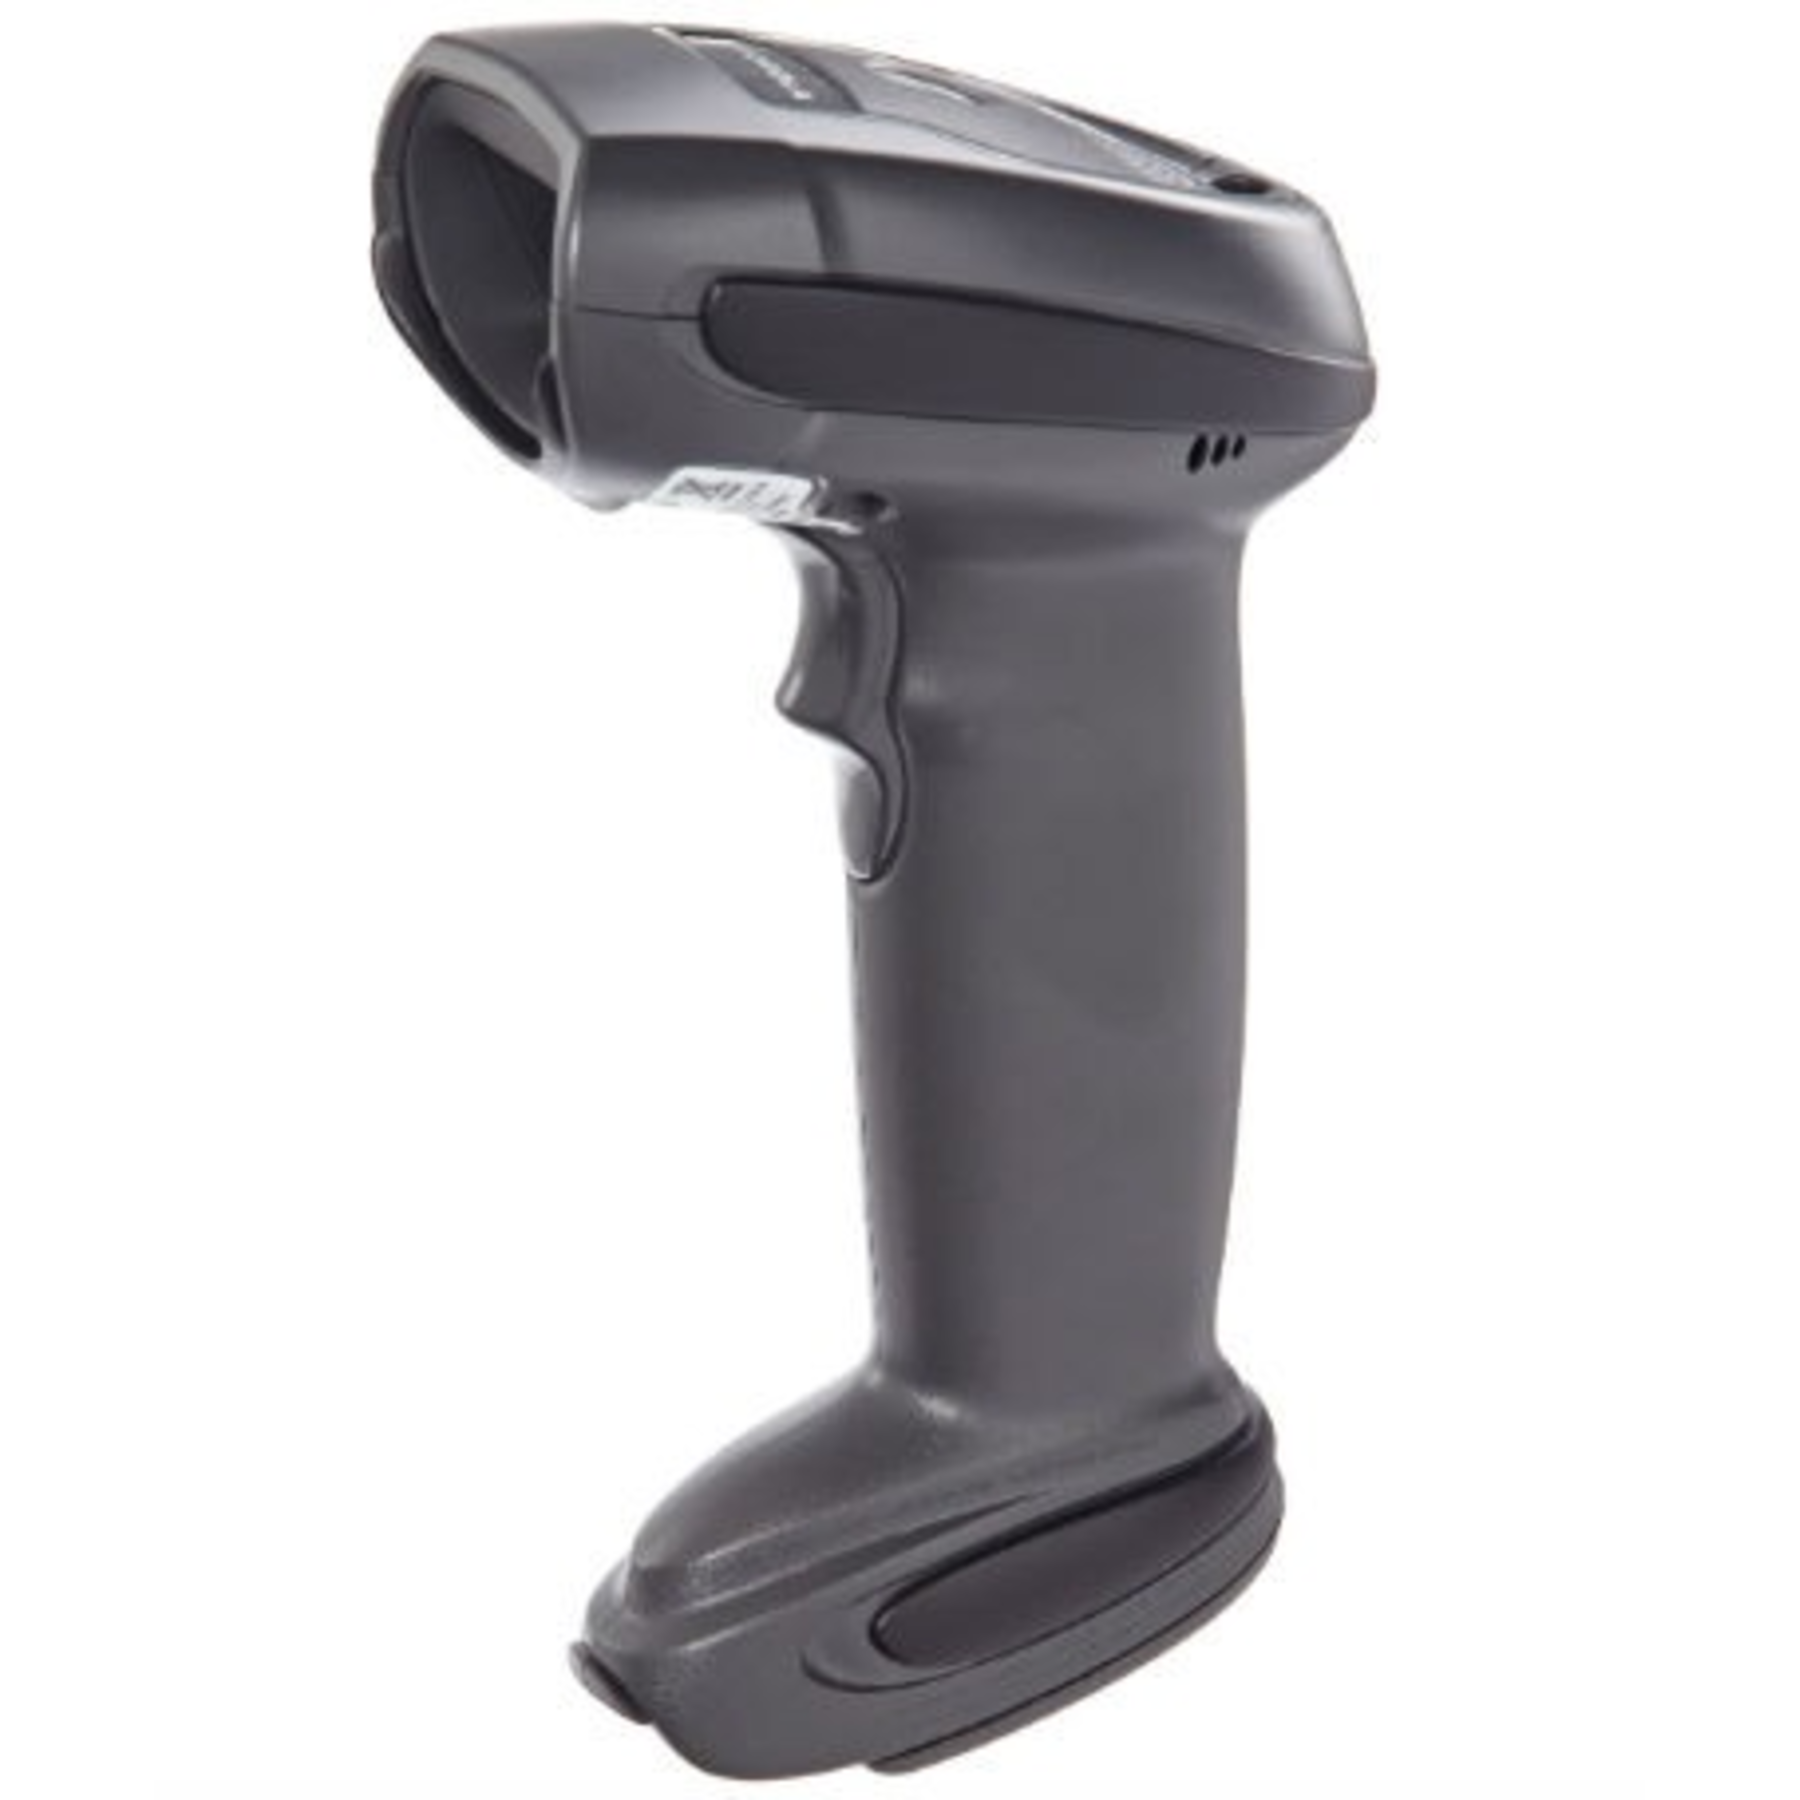 Symbol barcode scanner price gallery symbol and sign ideas scanner symbol li4278 image collections symbol and sign ideas zebra li4278 1d bluetooth barcode scanner cash buycottarizona